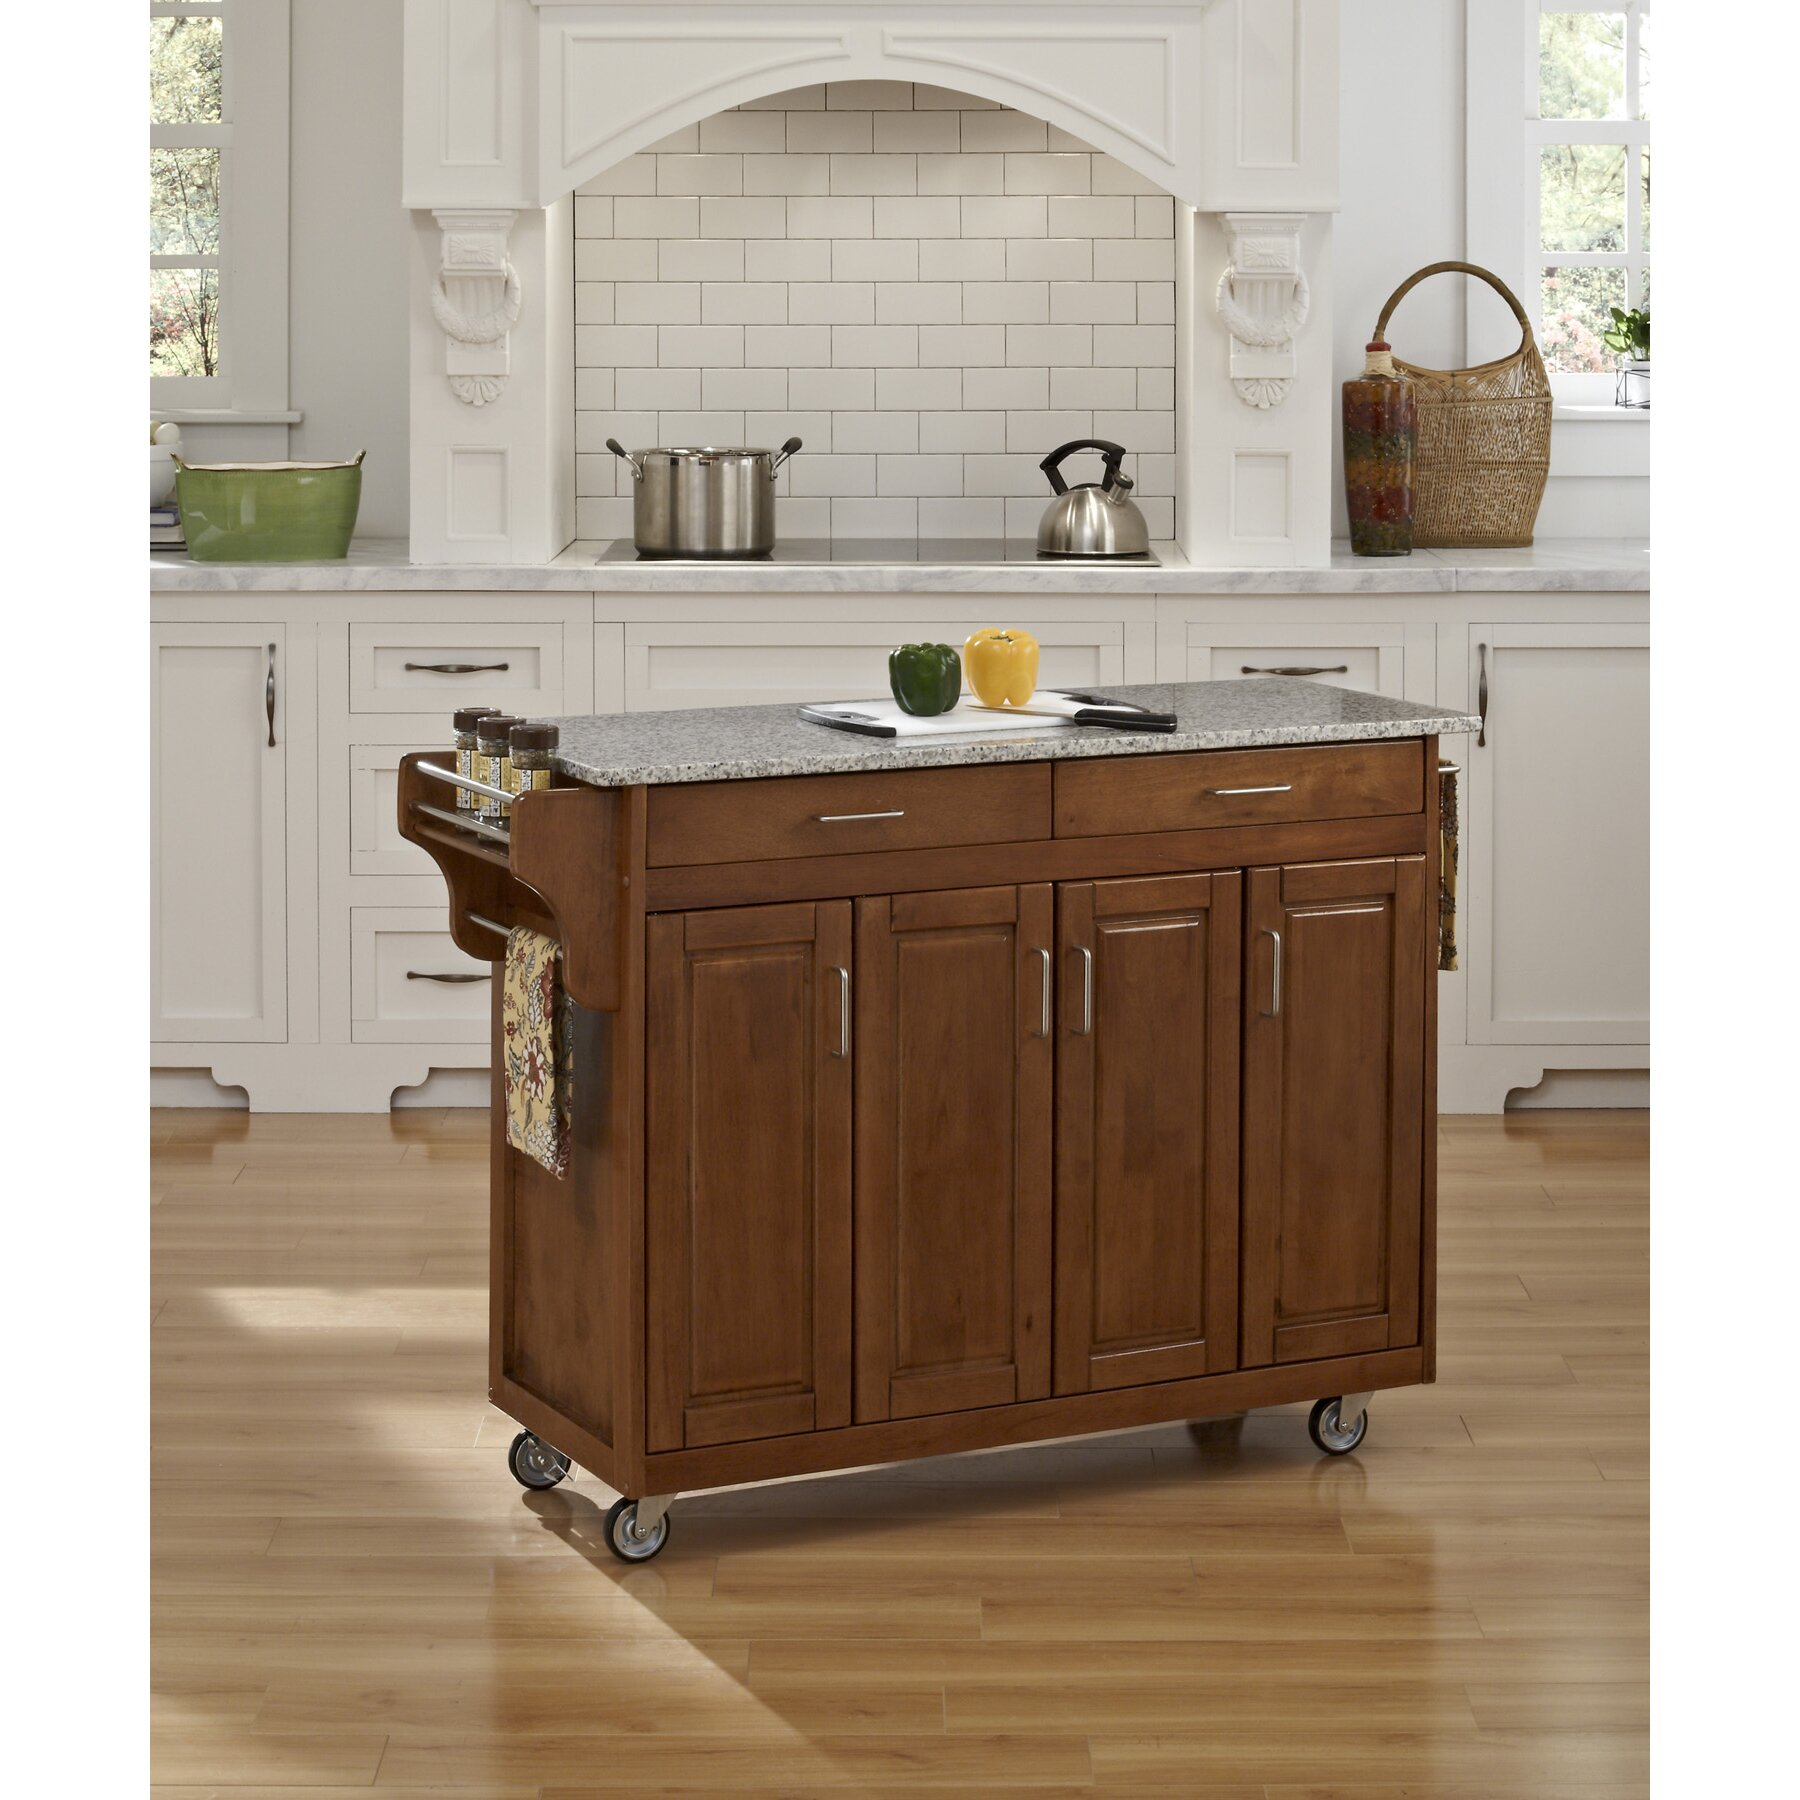 Granite Top Kitchen Cart August Grove Regiene Kitchen Island With Granite Top Reviews